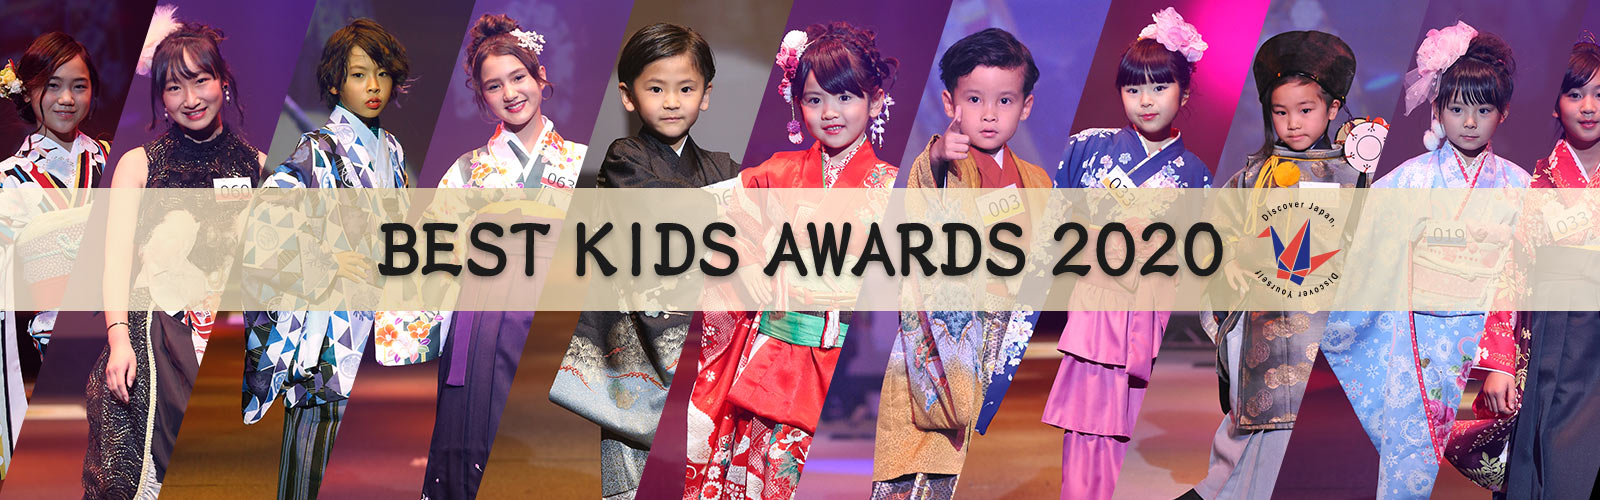 BEST KIDS AWARDS 2020